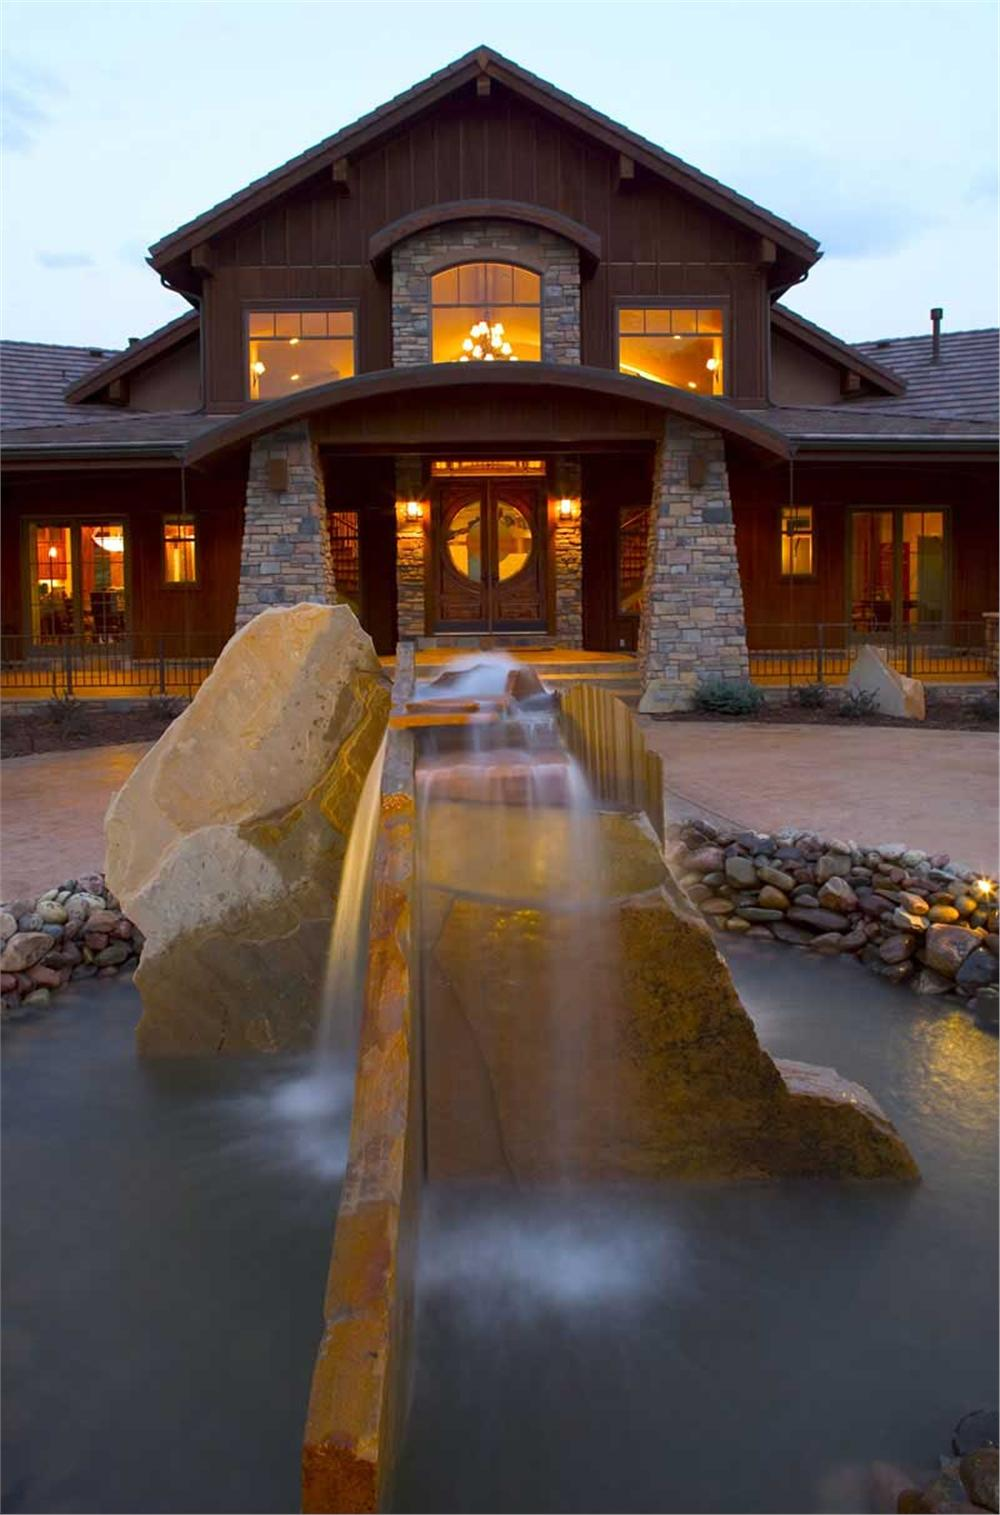 Water cascades down the large rocks of the front fountain of a gorgeous 2-story, 4-bedroom Craftsman style home plan.